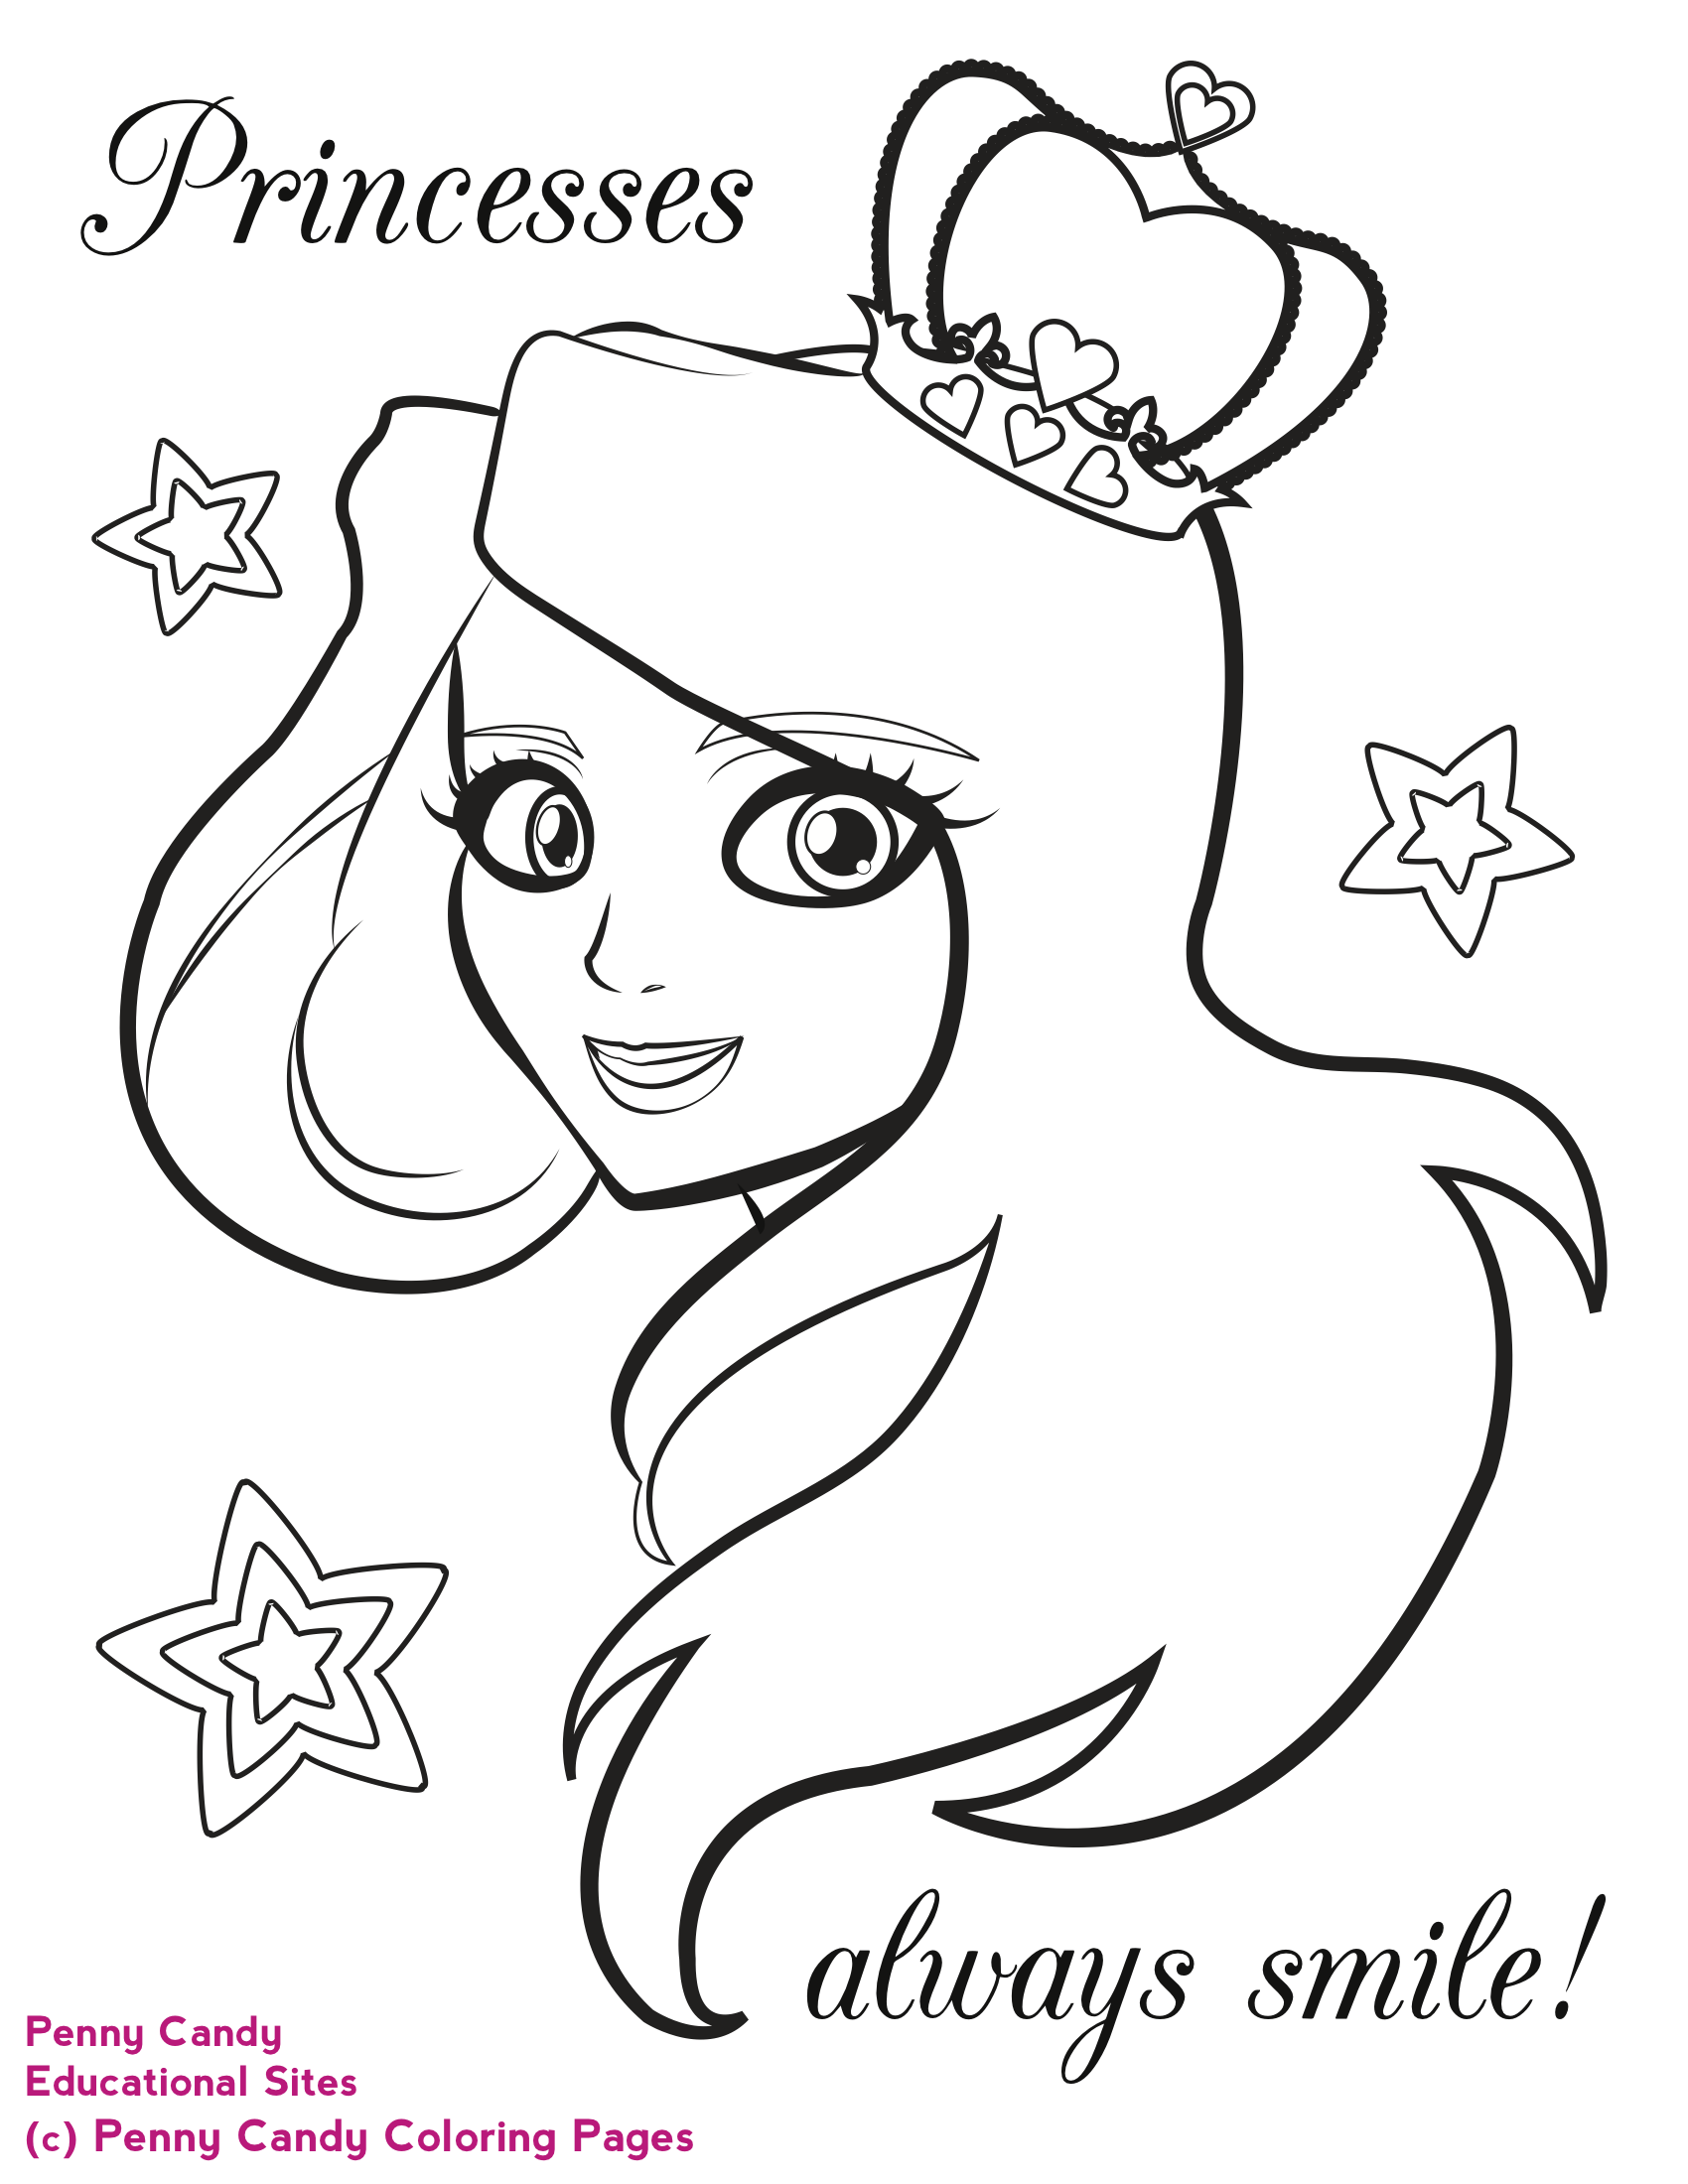 Kids coloring book pages free - Kid Coloring Printables Kids Coloring Pages Printable Princess